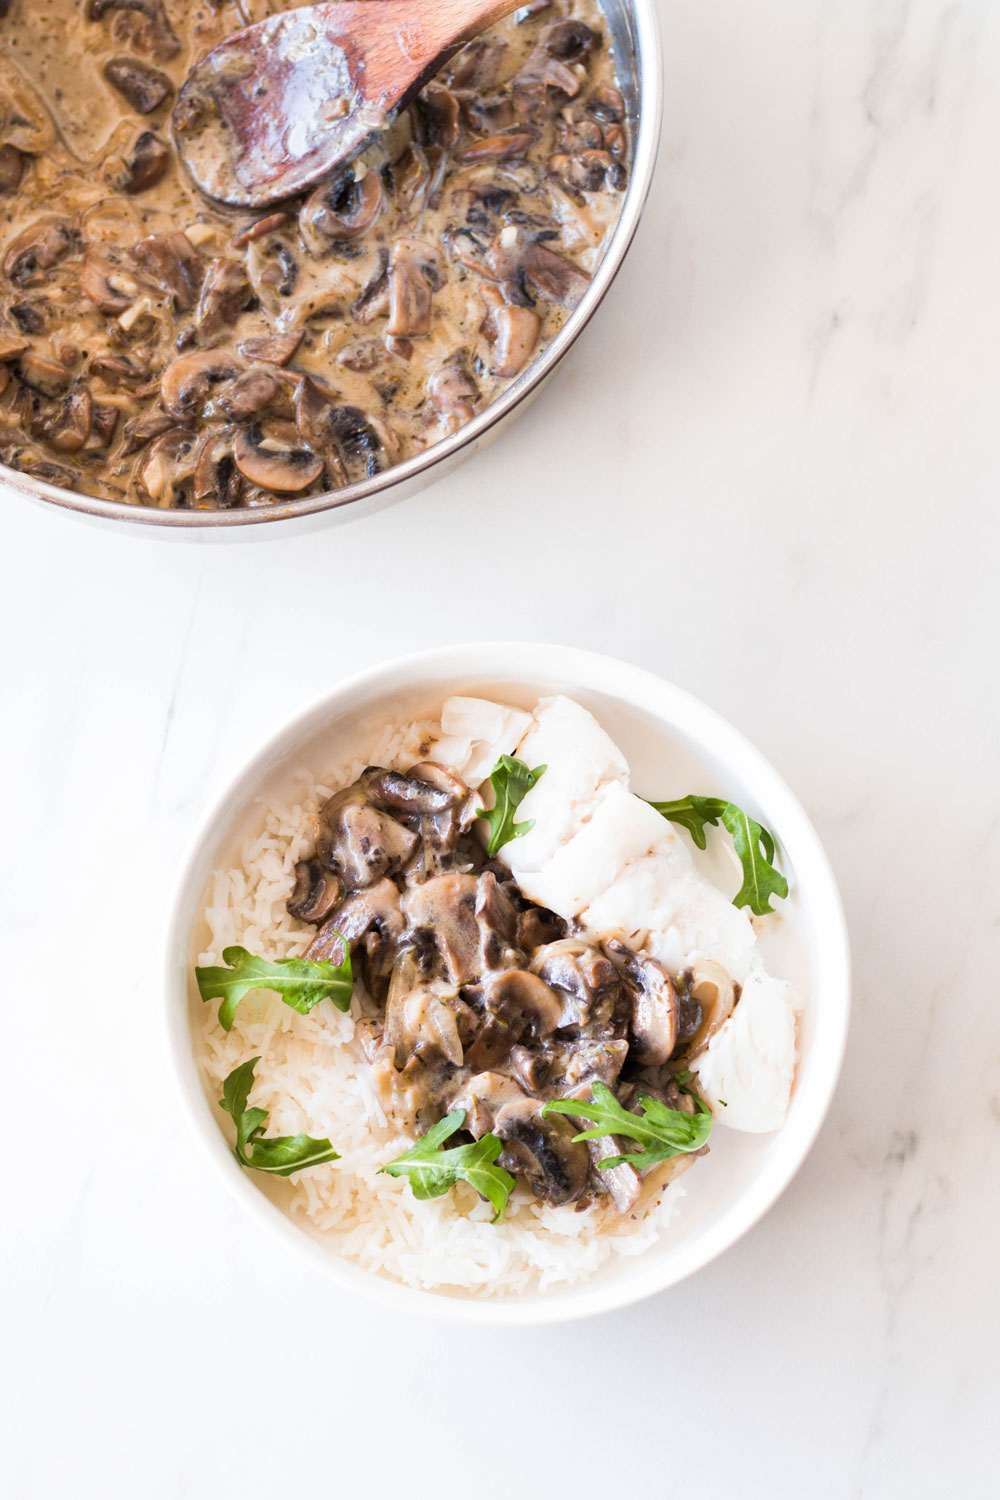 This creamy mushroom sauce recipe can transform your meals and take them up another notch. This sauce rescues the most boring of plates and helps you elevate basic foods into complex, vibrant-tasting dishes. It jazzes up grain bowls, and instantly turns proteins like white fish into a dinner you'd probably pay a lot for at a restaurant. https://www.spotebi.com/recipes/creamy-mushroom-sauce-recipe/